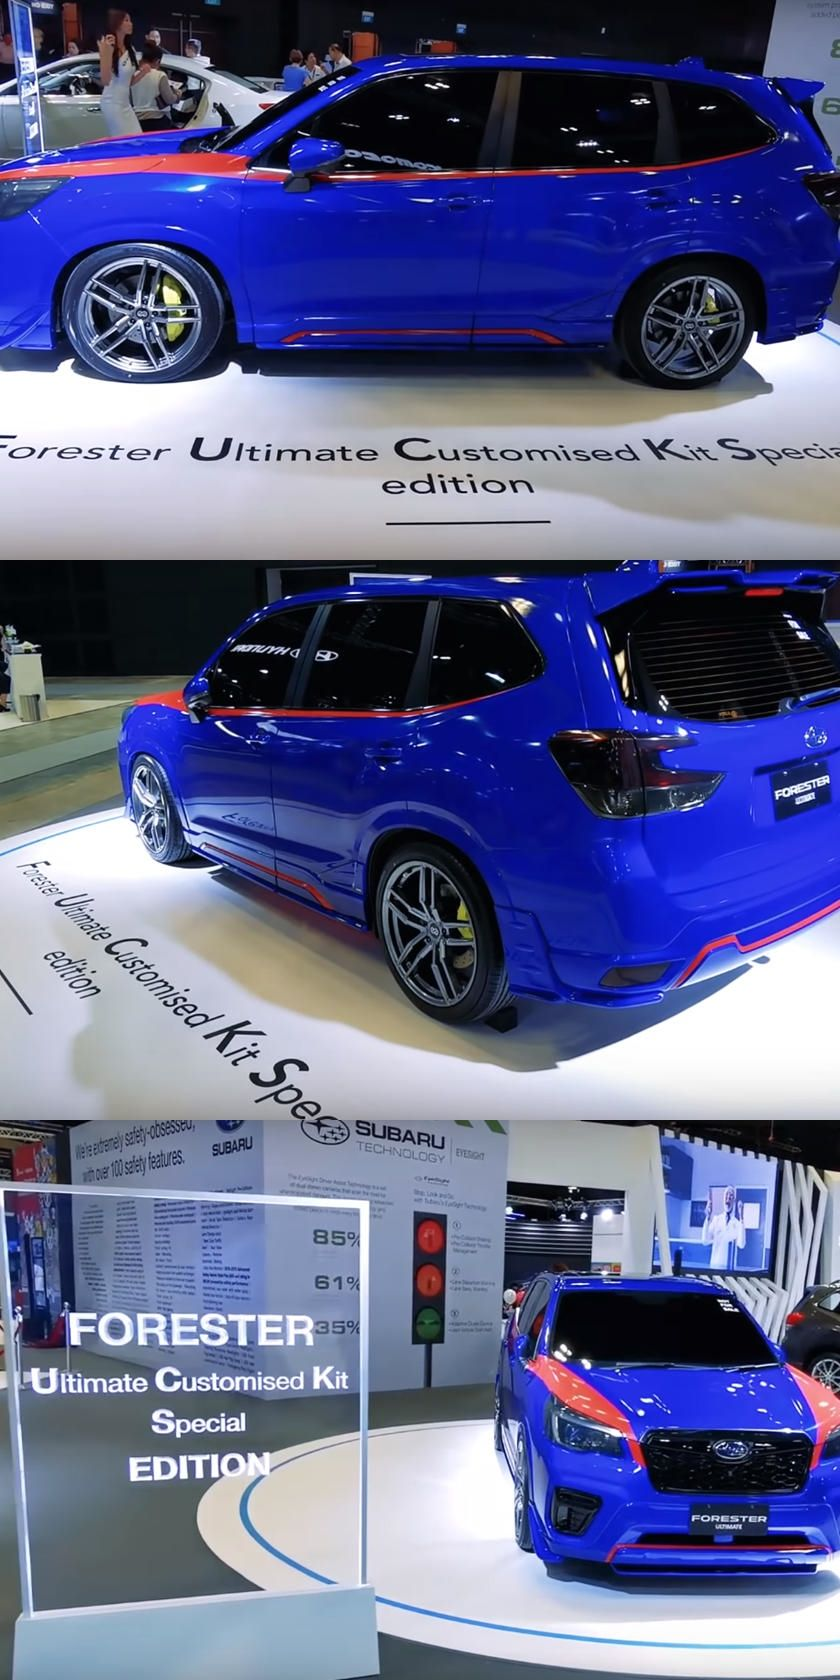 Special Edition Subaru Forester Has Dirtiest Name We Ve Ever Seen Internet Says Wtf As Crass Suv Hits The Singapore Auto Show In 2020 Subaru Forester Subaru New Cars